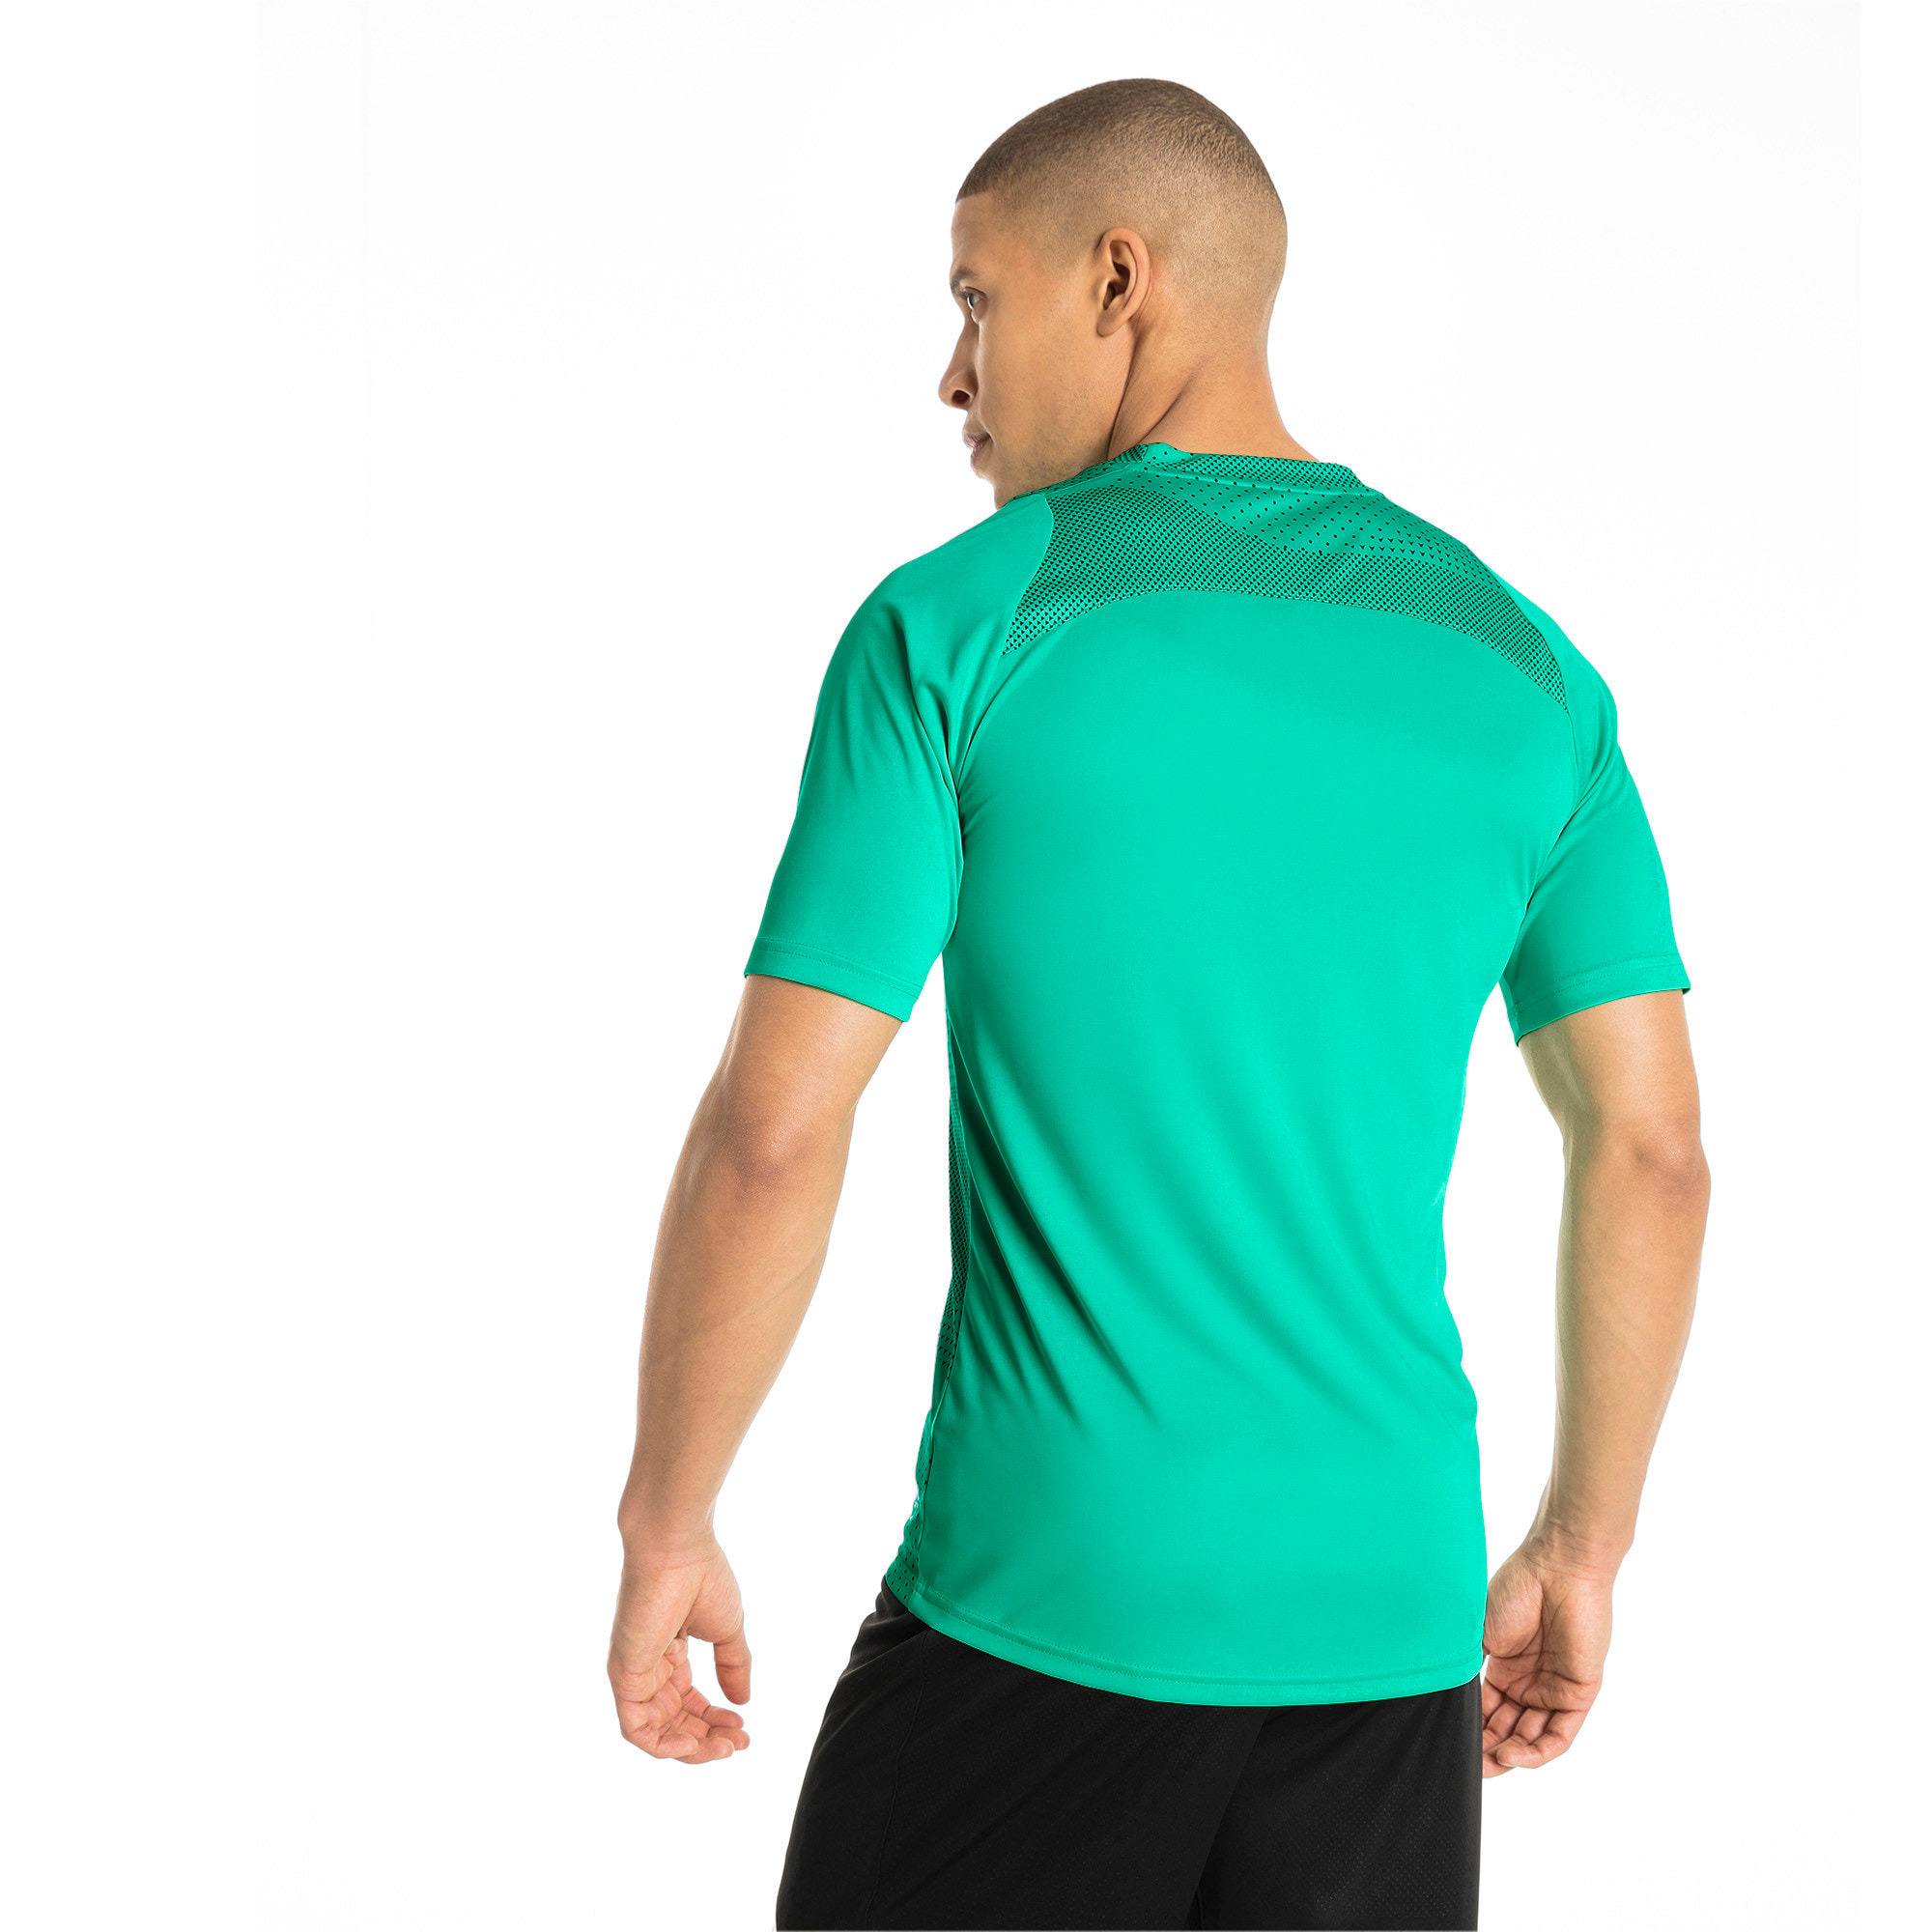 Thumbnail 3 of ftblNXT Graphic Core Men's Training Top, Biscay Green-Iron Gate, medium